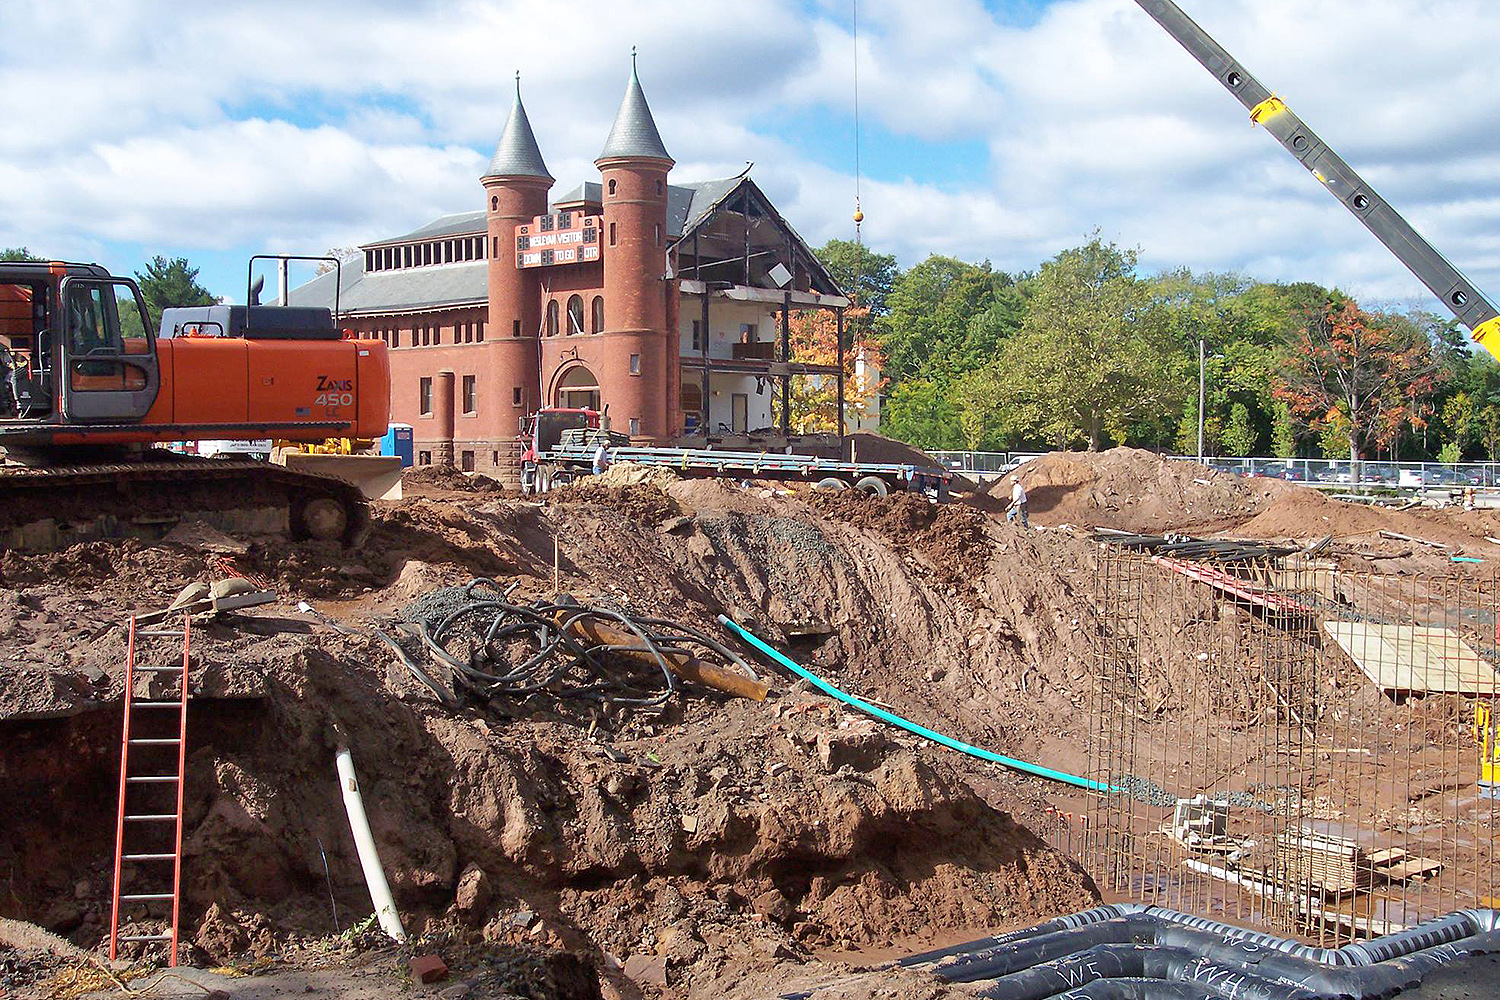 Construction for the new university center began in 2005. Crews demolished part of the Fayerweather building and the outdated Alumni Athletic Building, also known as the 'Cage,' to make room for the new facility.